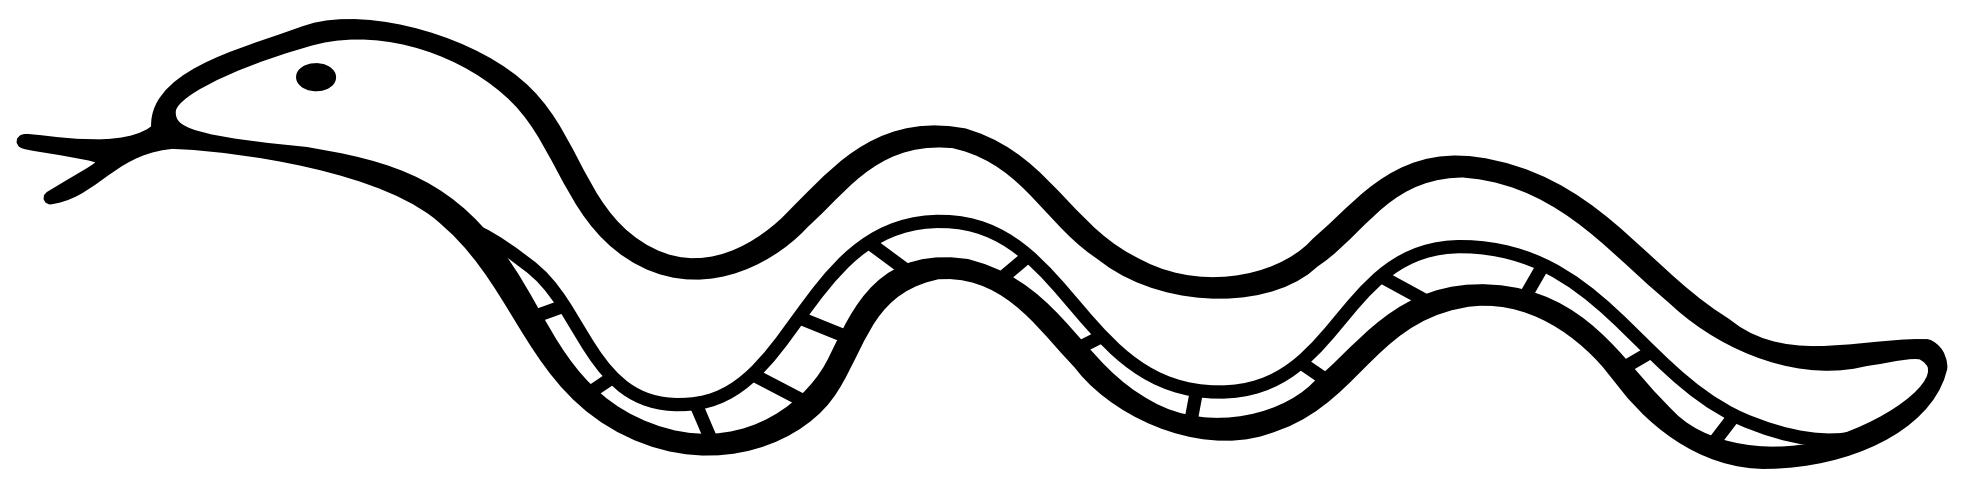 Snake Clipart Black And White.